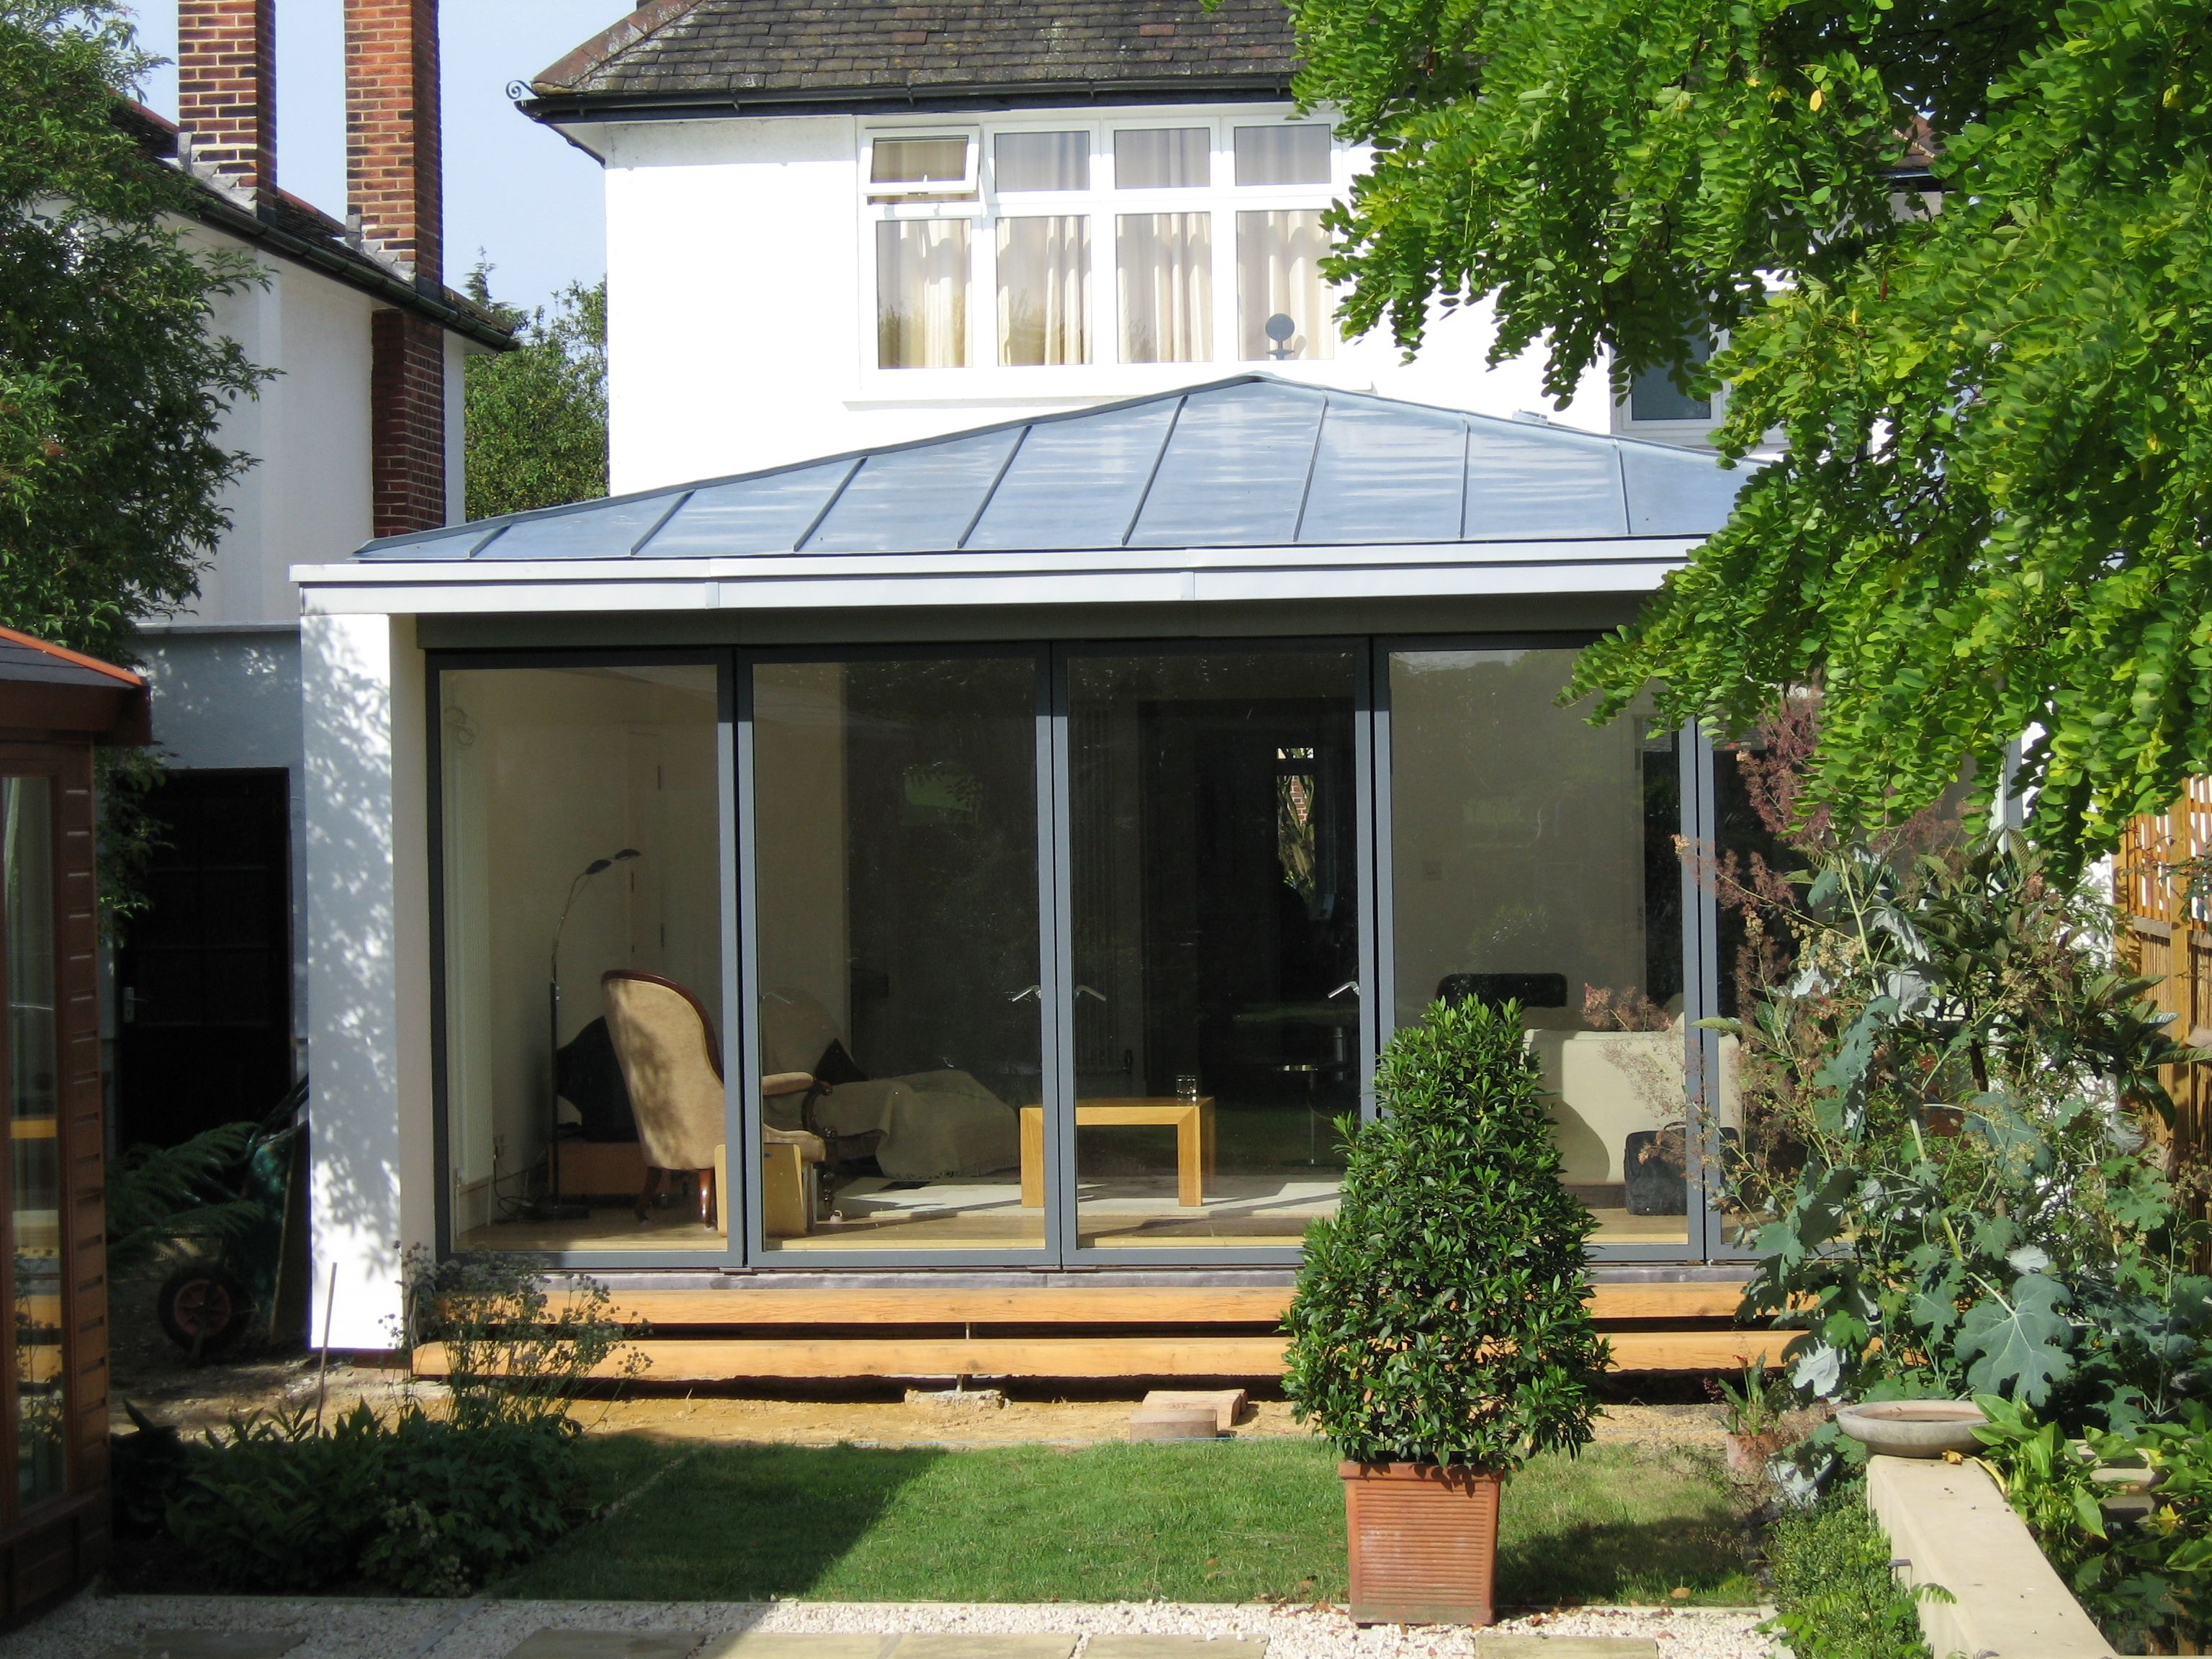 Pin By Kate Craddock On Roof Pitch Zinc Roof House Extensions Roof Extension